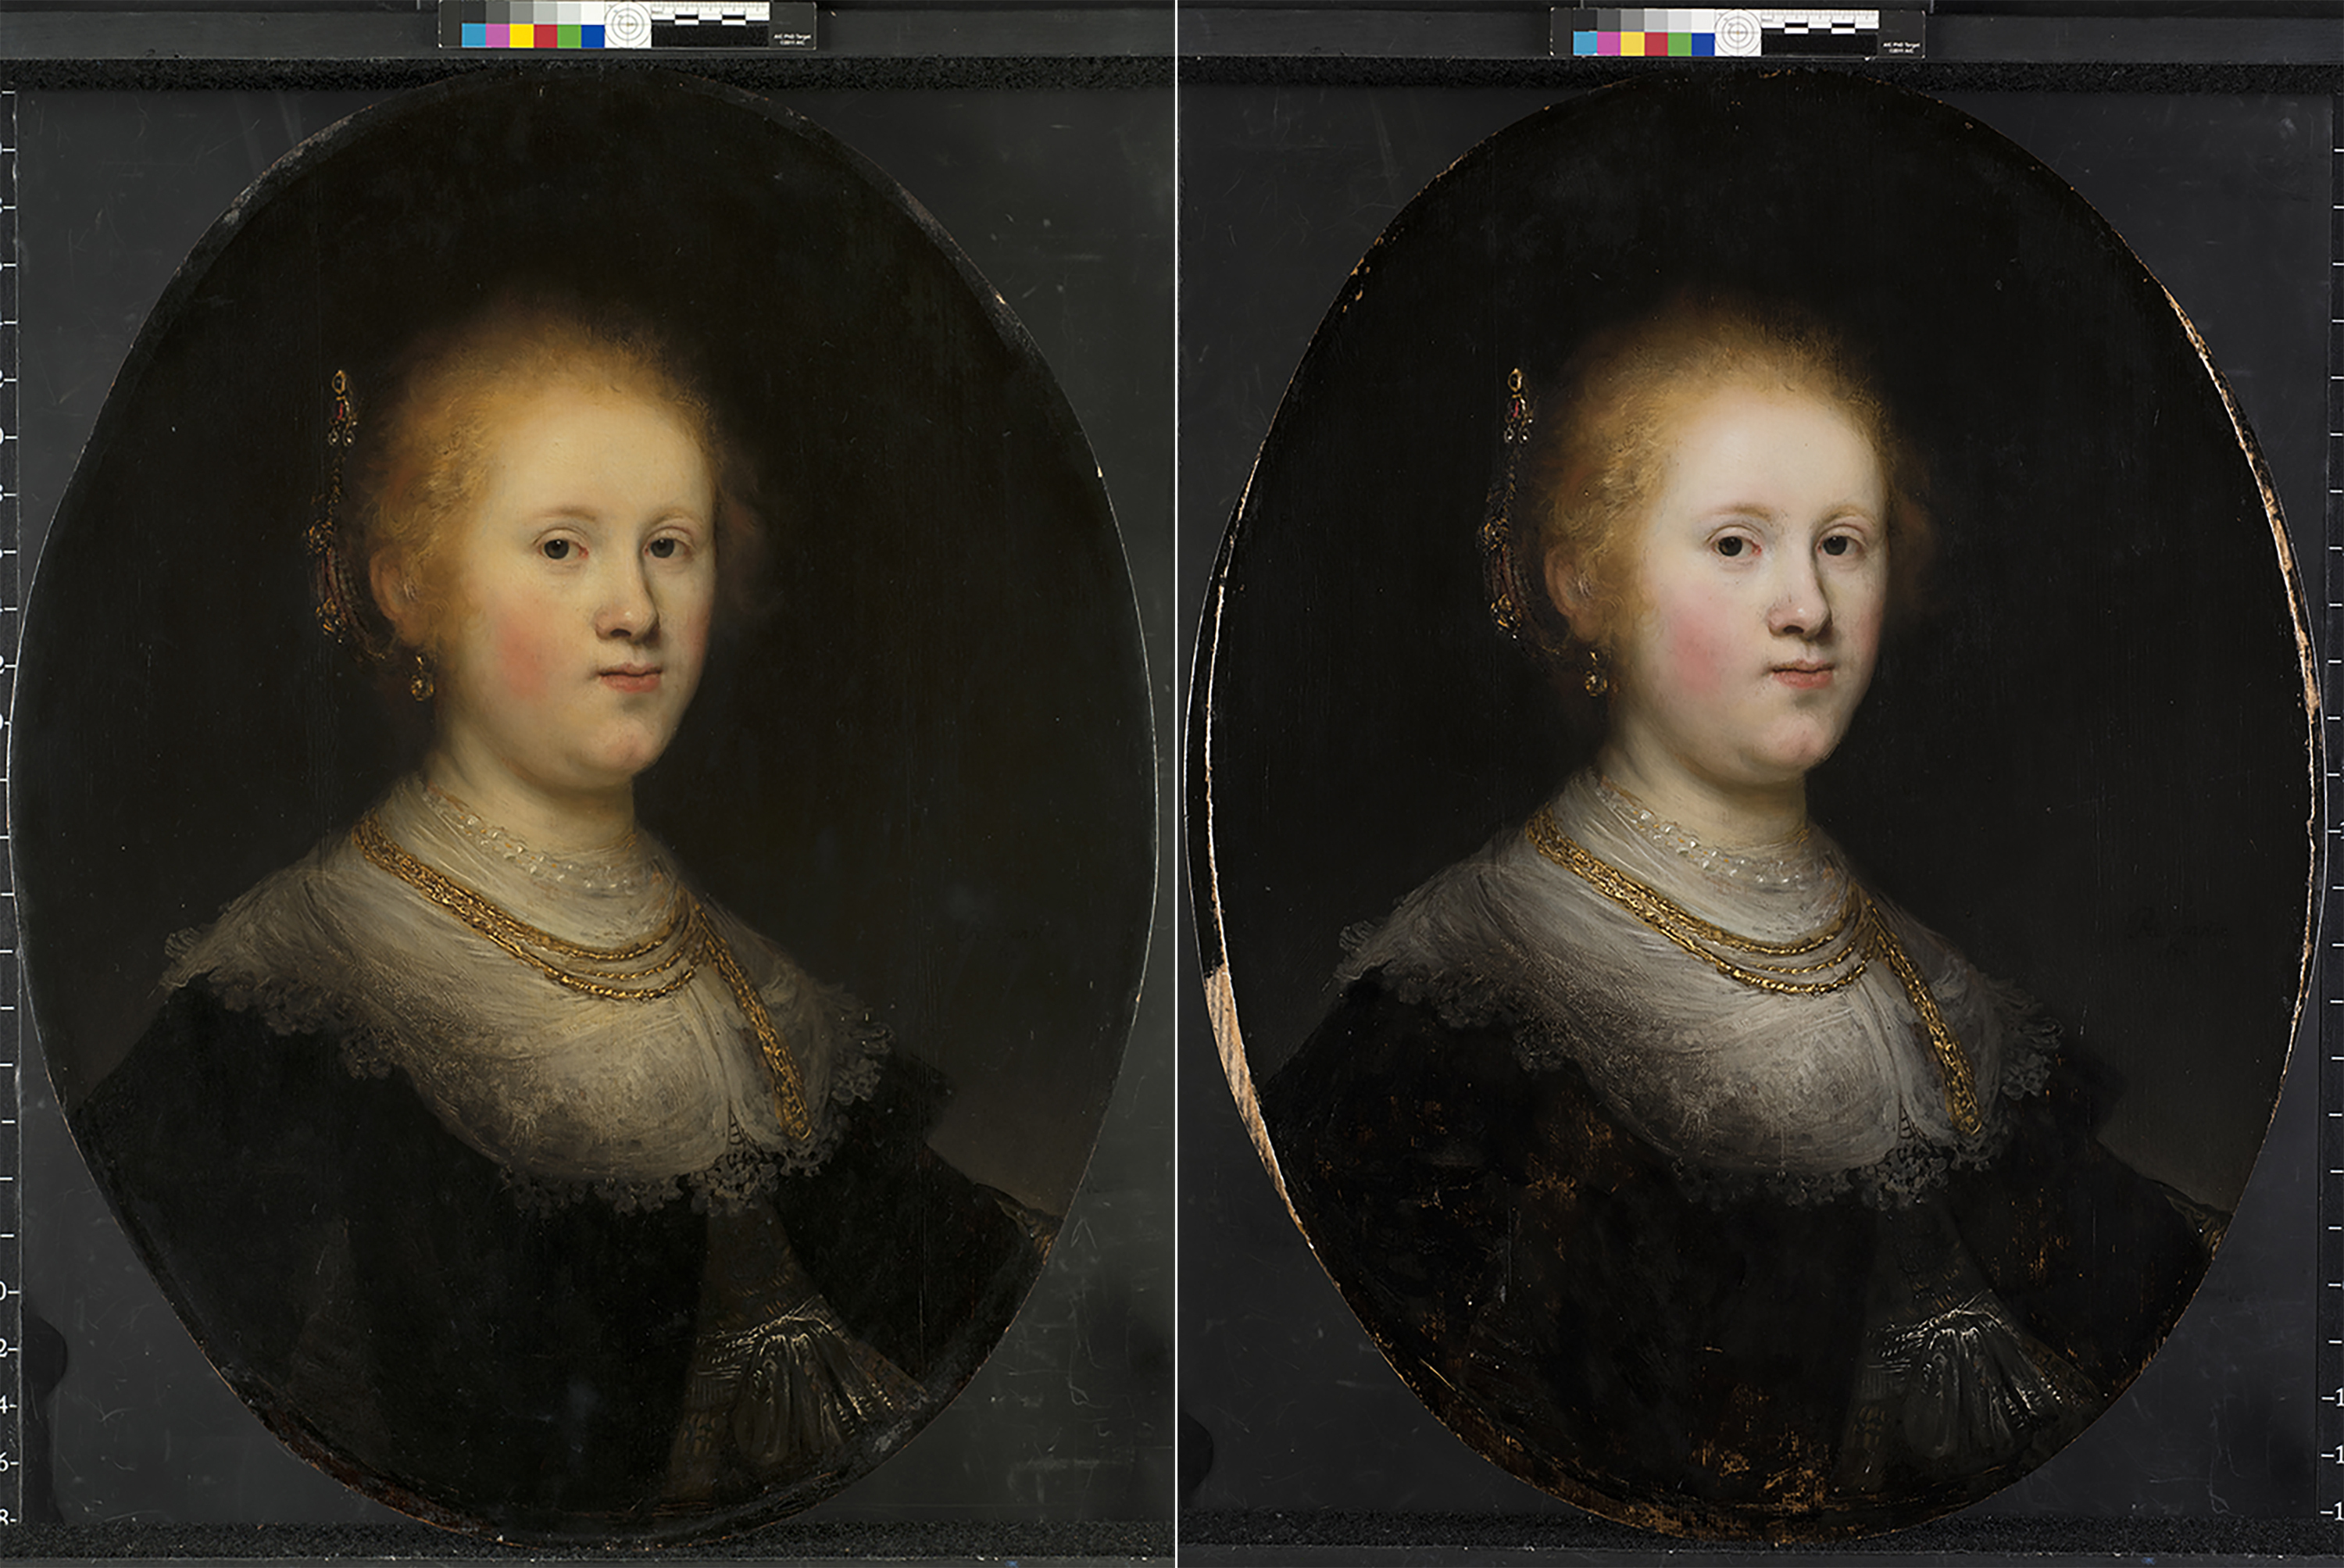 The painting before, left, and after, right, it was restored